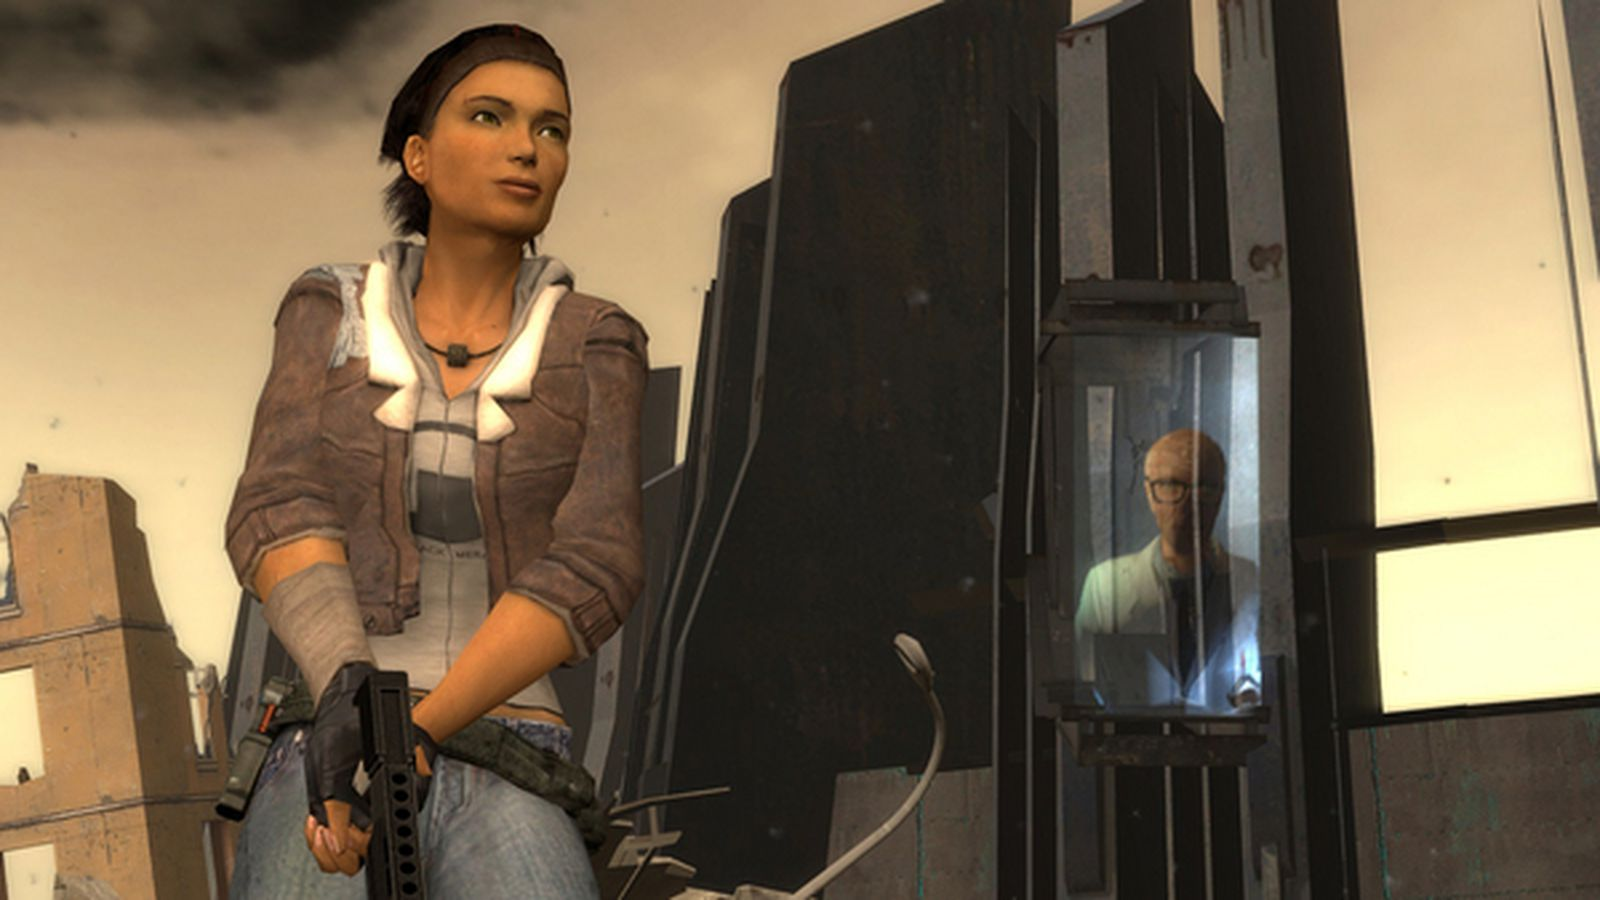 Half-Life 2 maps leak online, but are they legit?